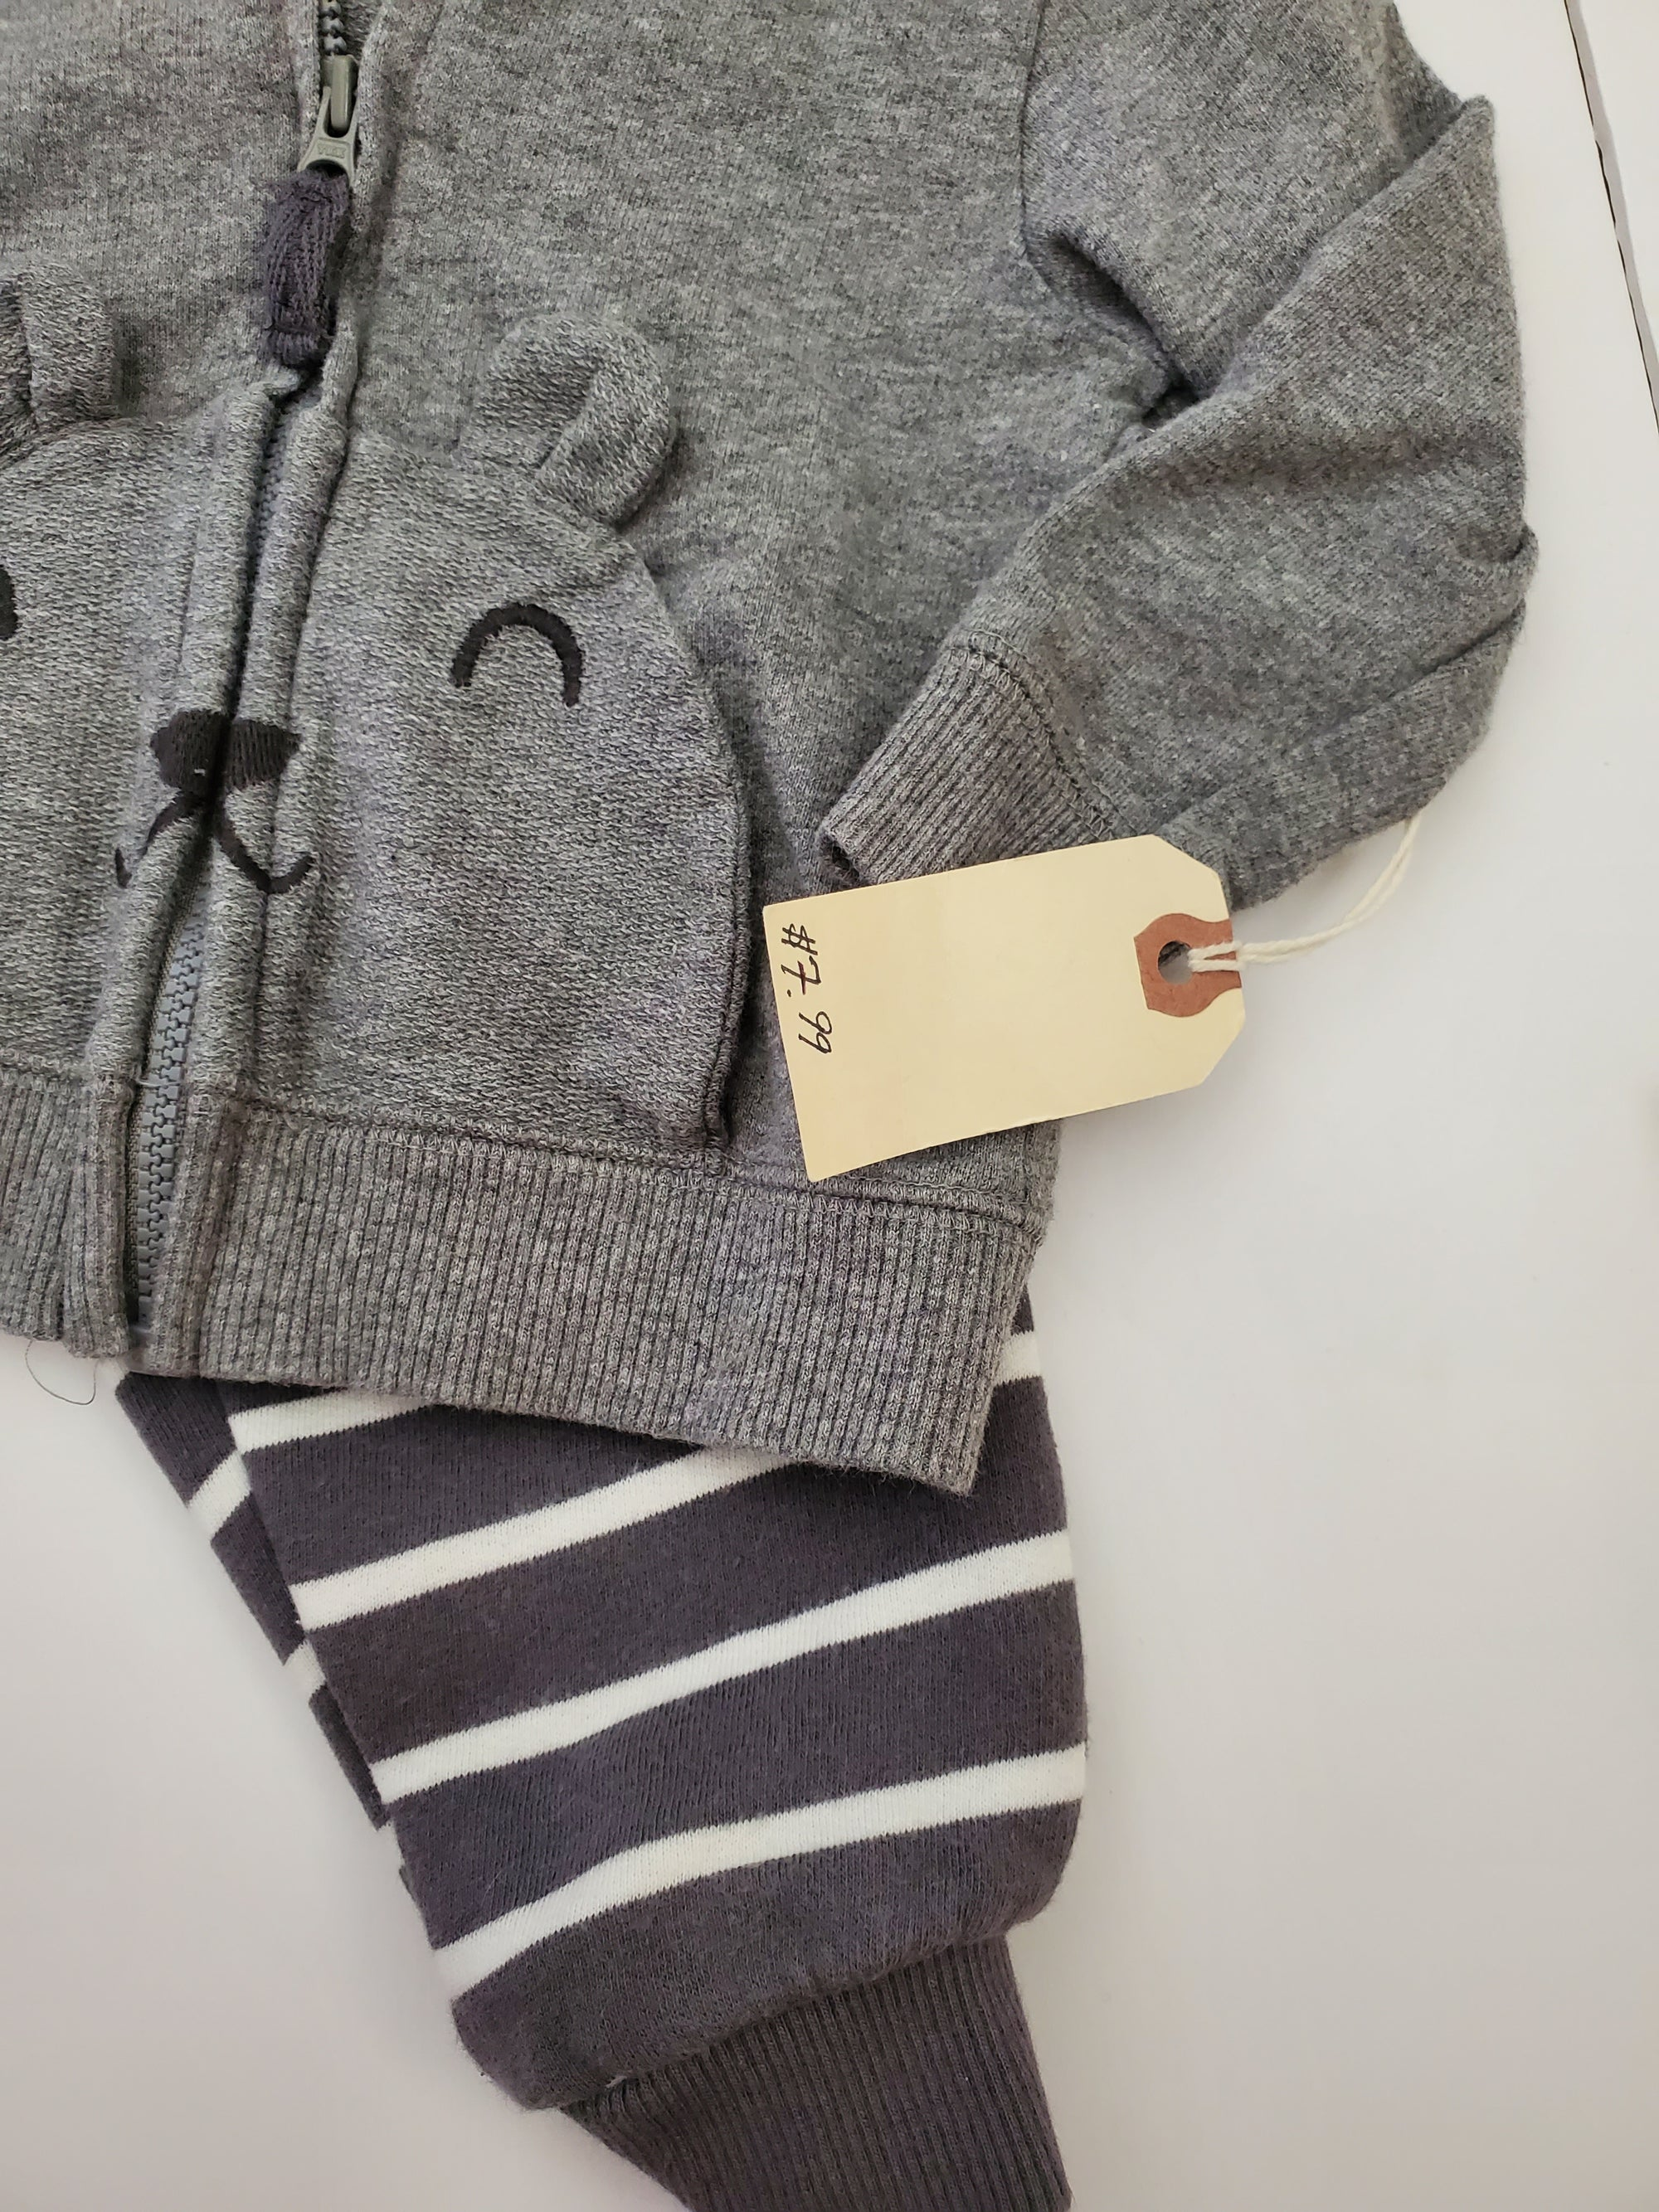 Resale 9 m Carter's Grey Bear Outfit